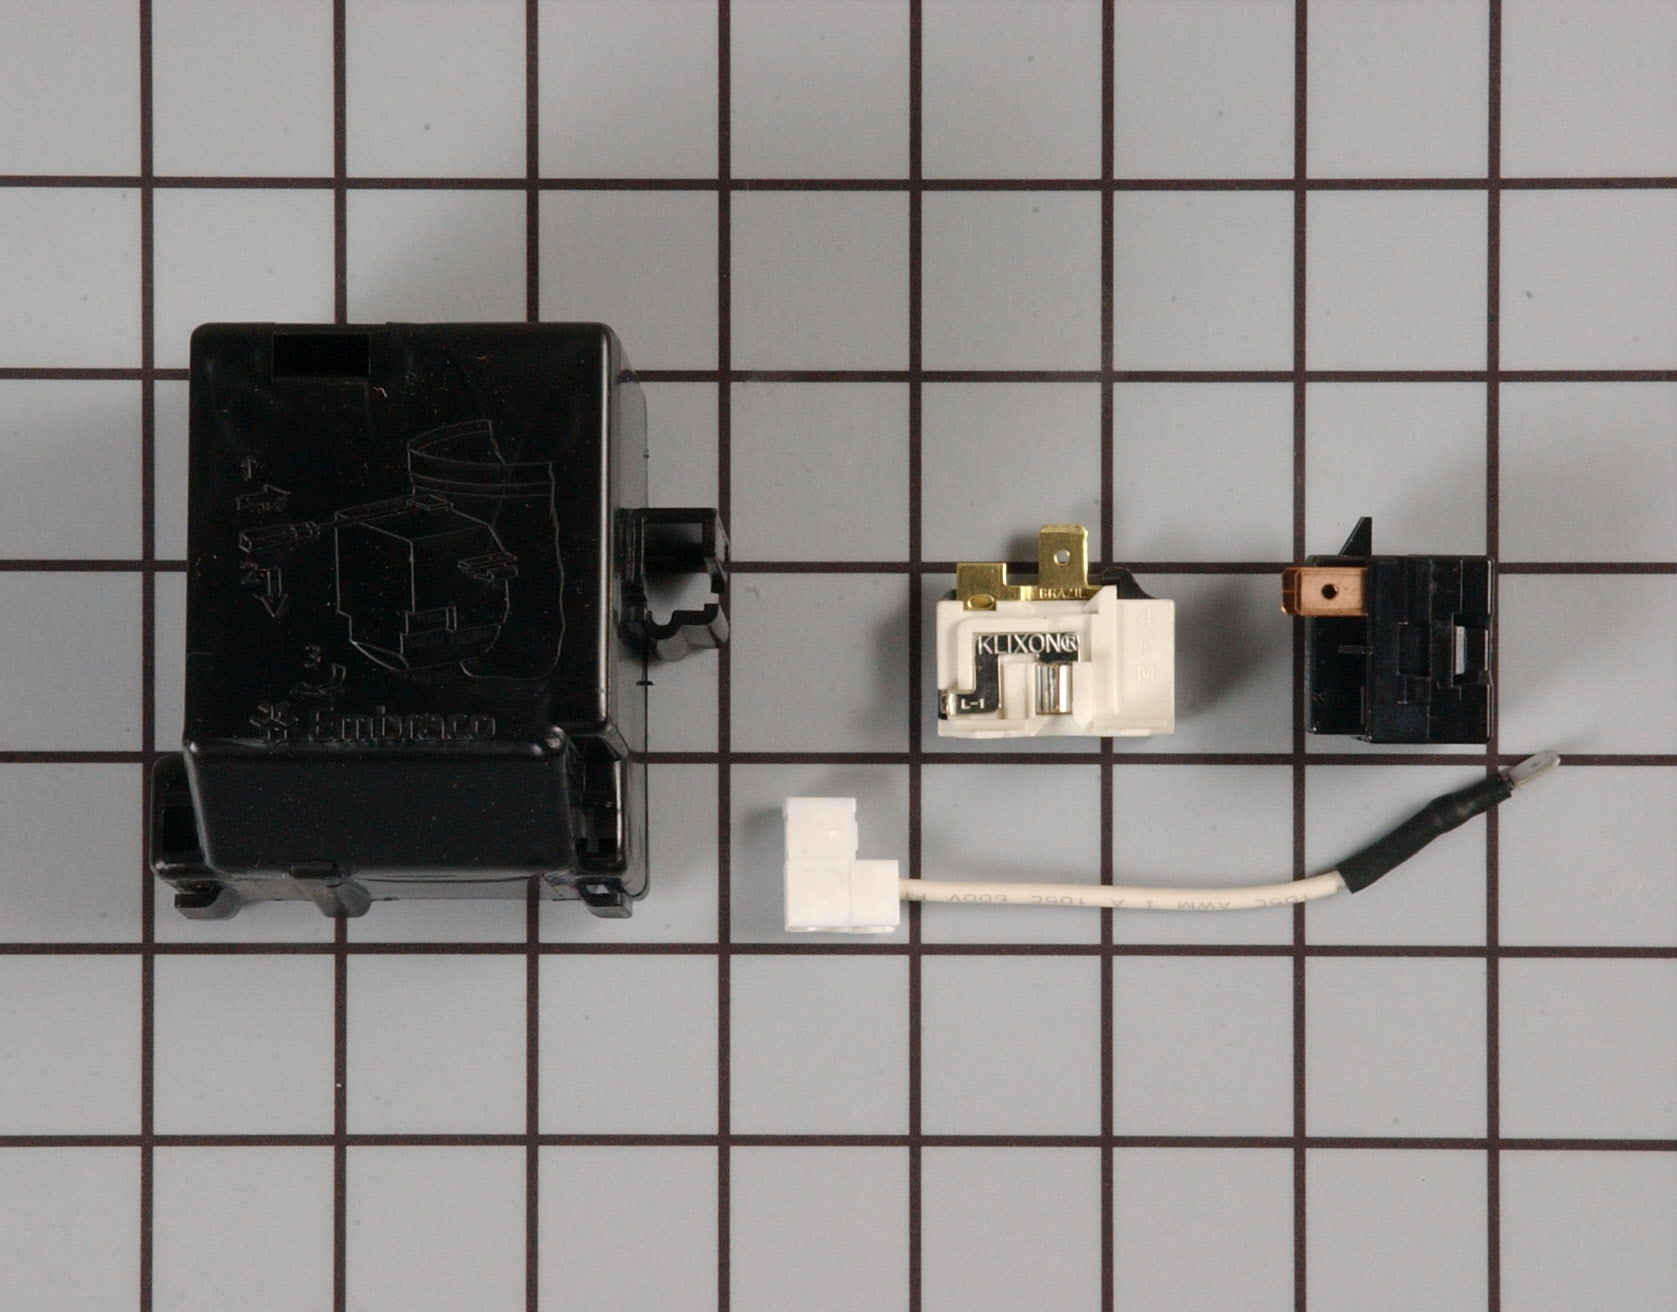 12002784 Crosley Refrigerator Part -Relay and Overload Kit